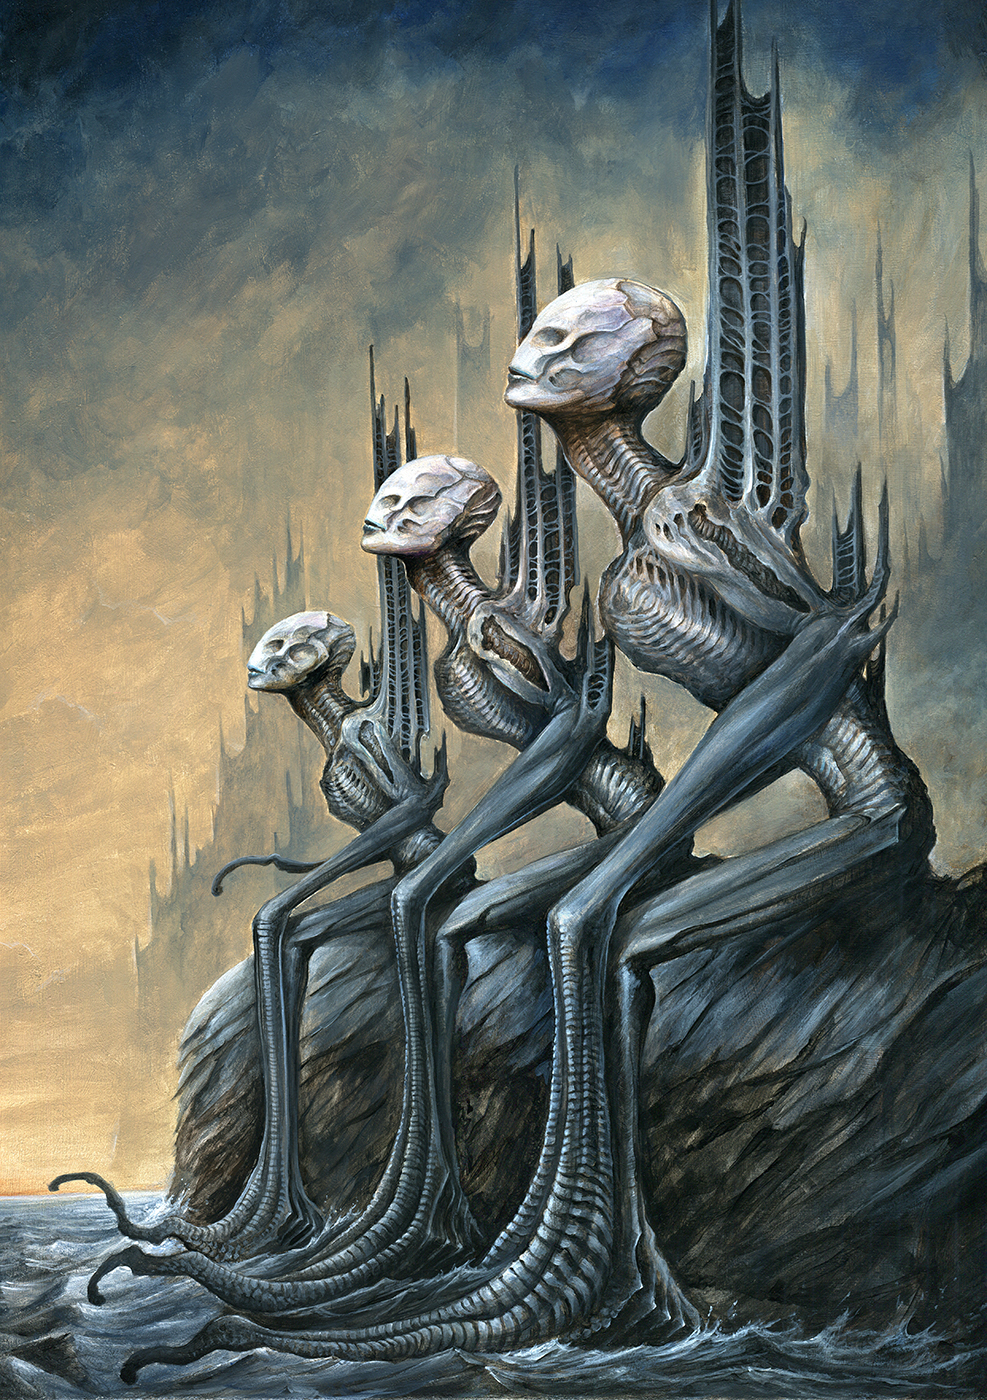 The Watchers by Markelli